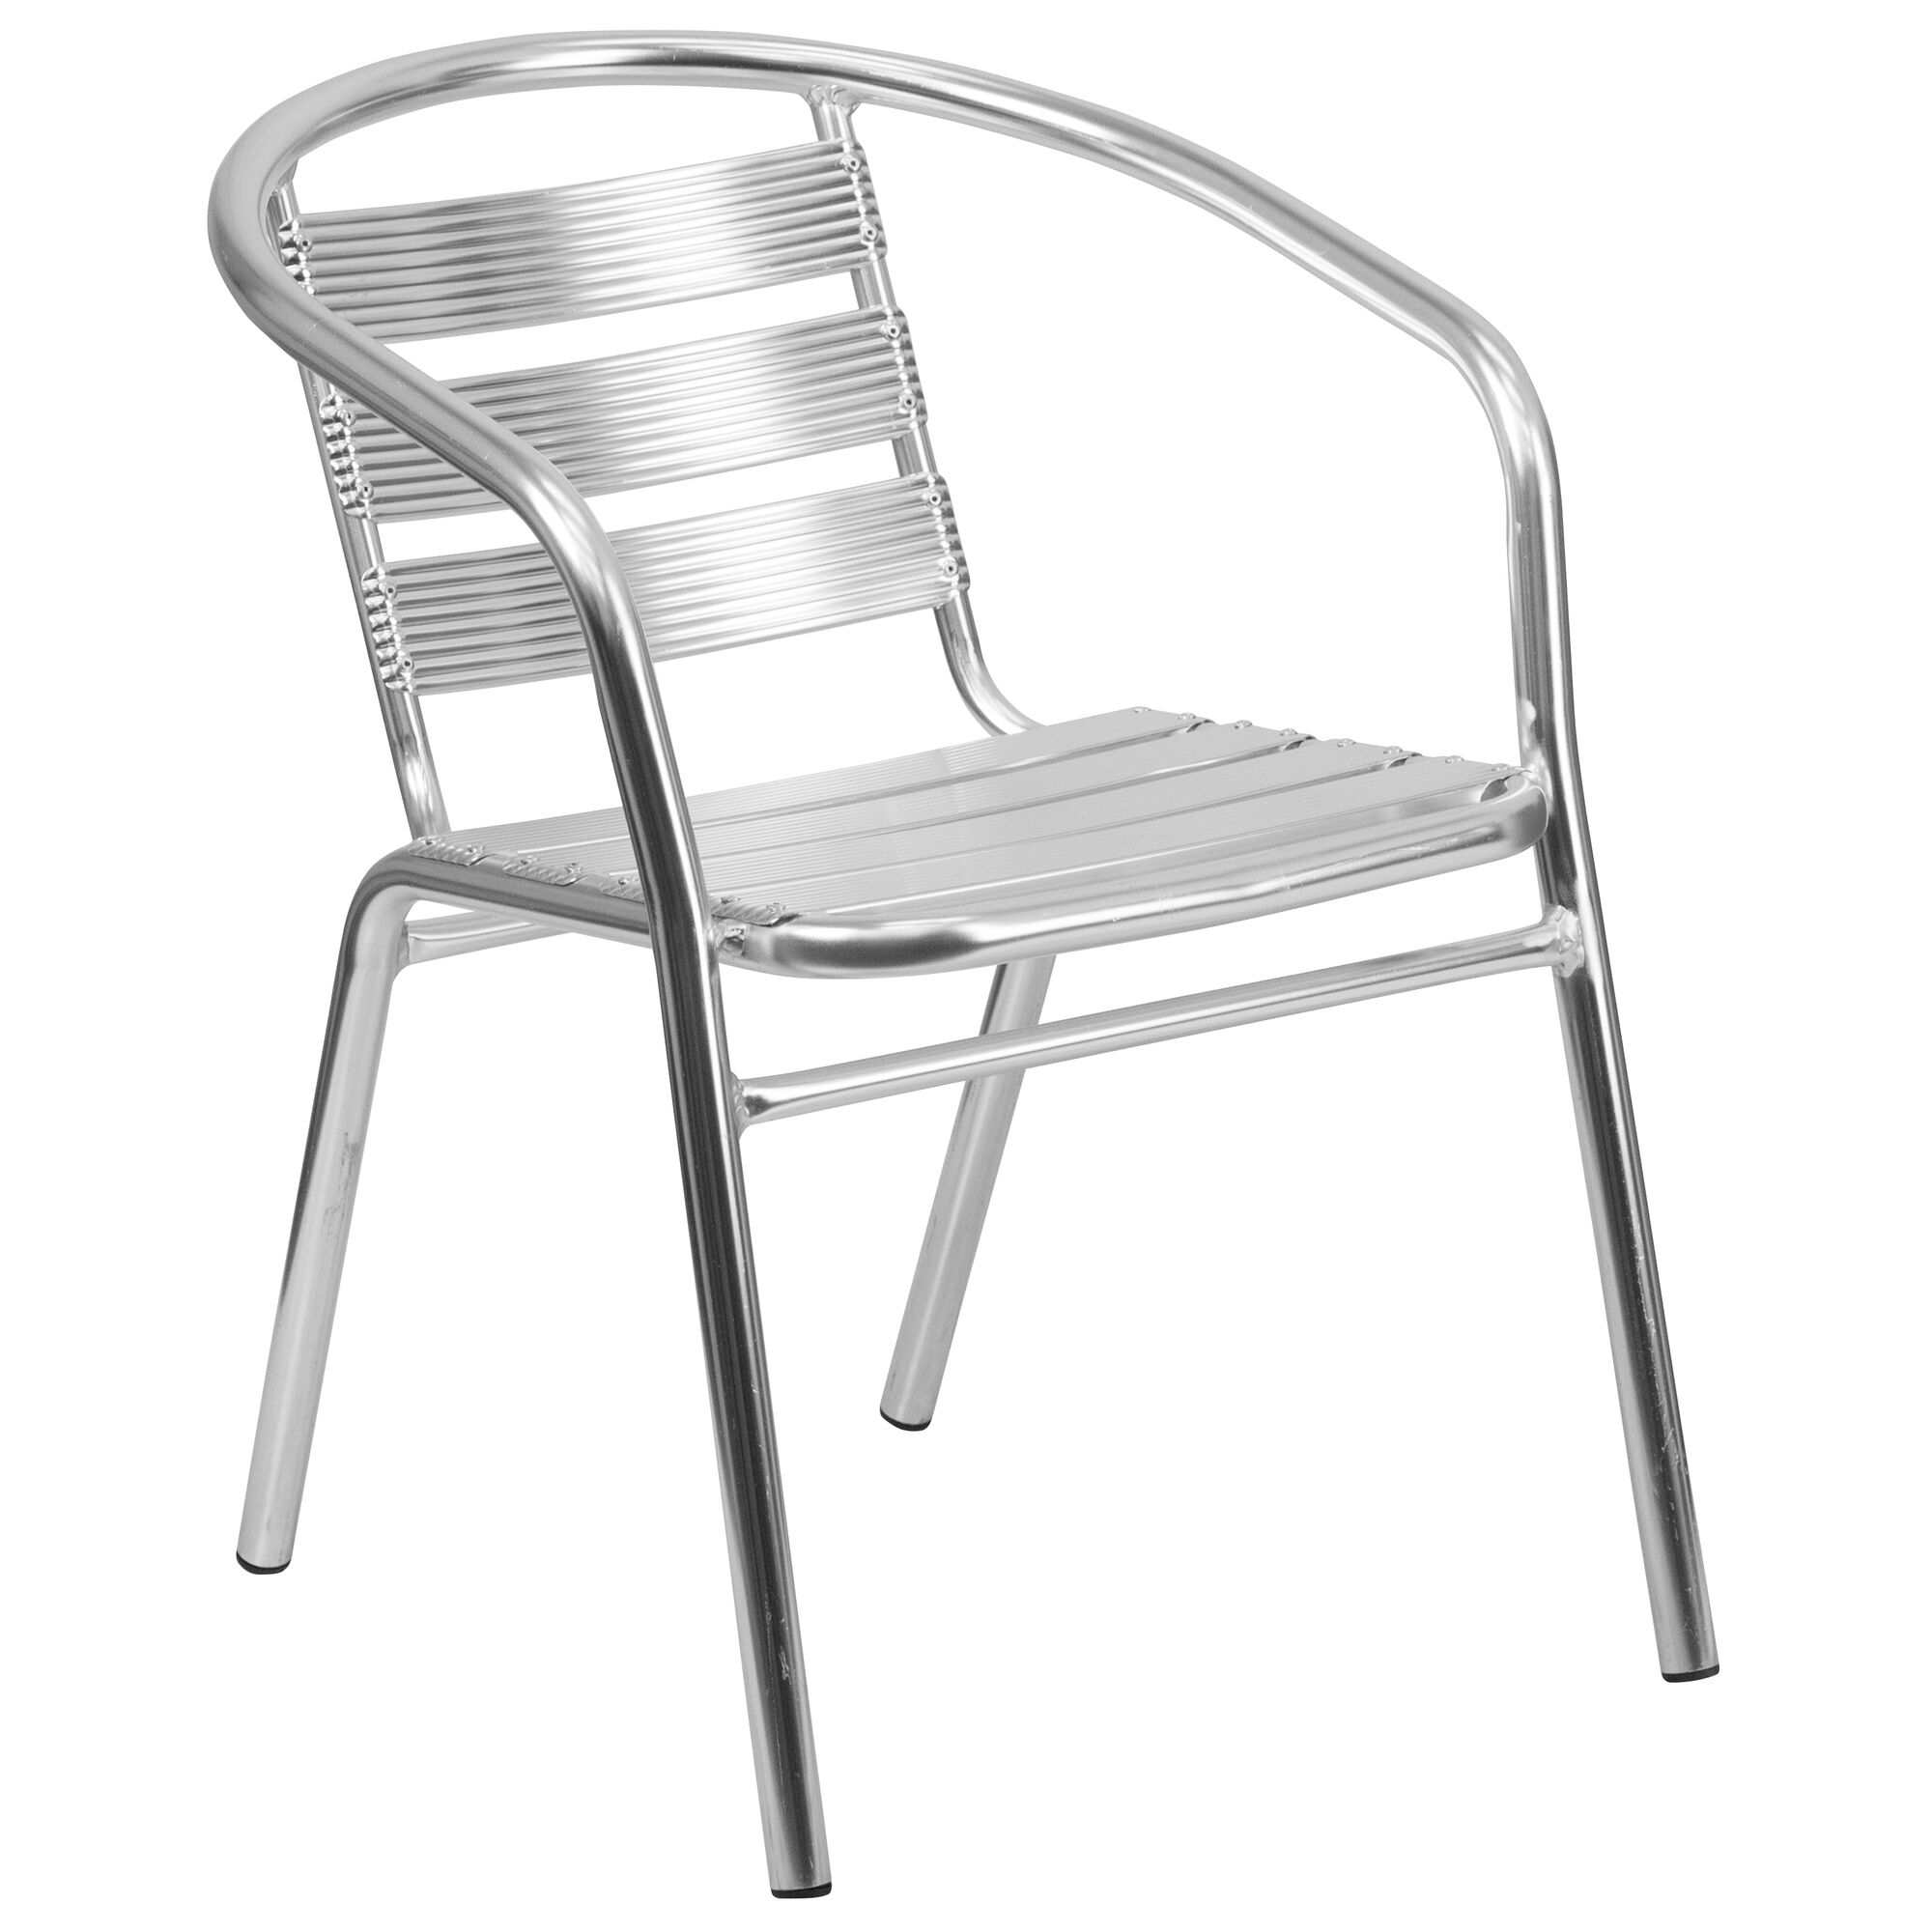 Wondrous Stackchairs4Less Aluminum Stack Chairs Home Interior And Landscaping Eliaenasavecom